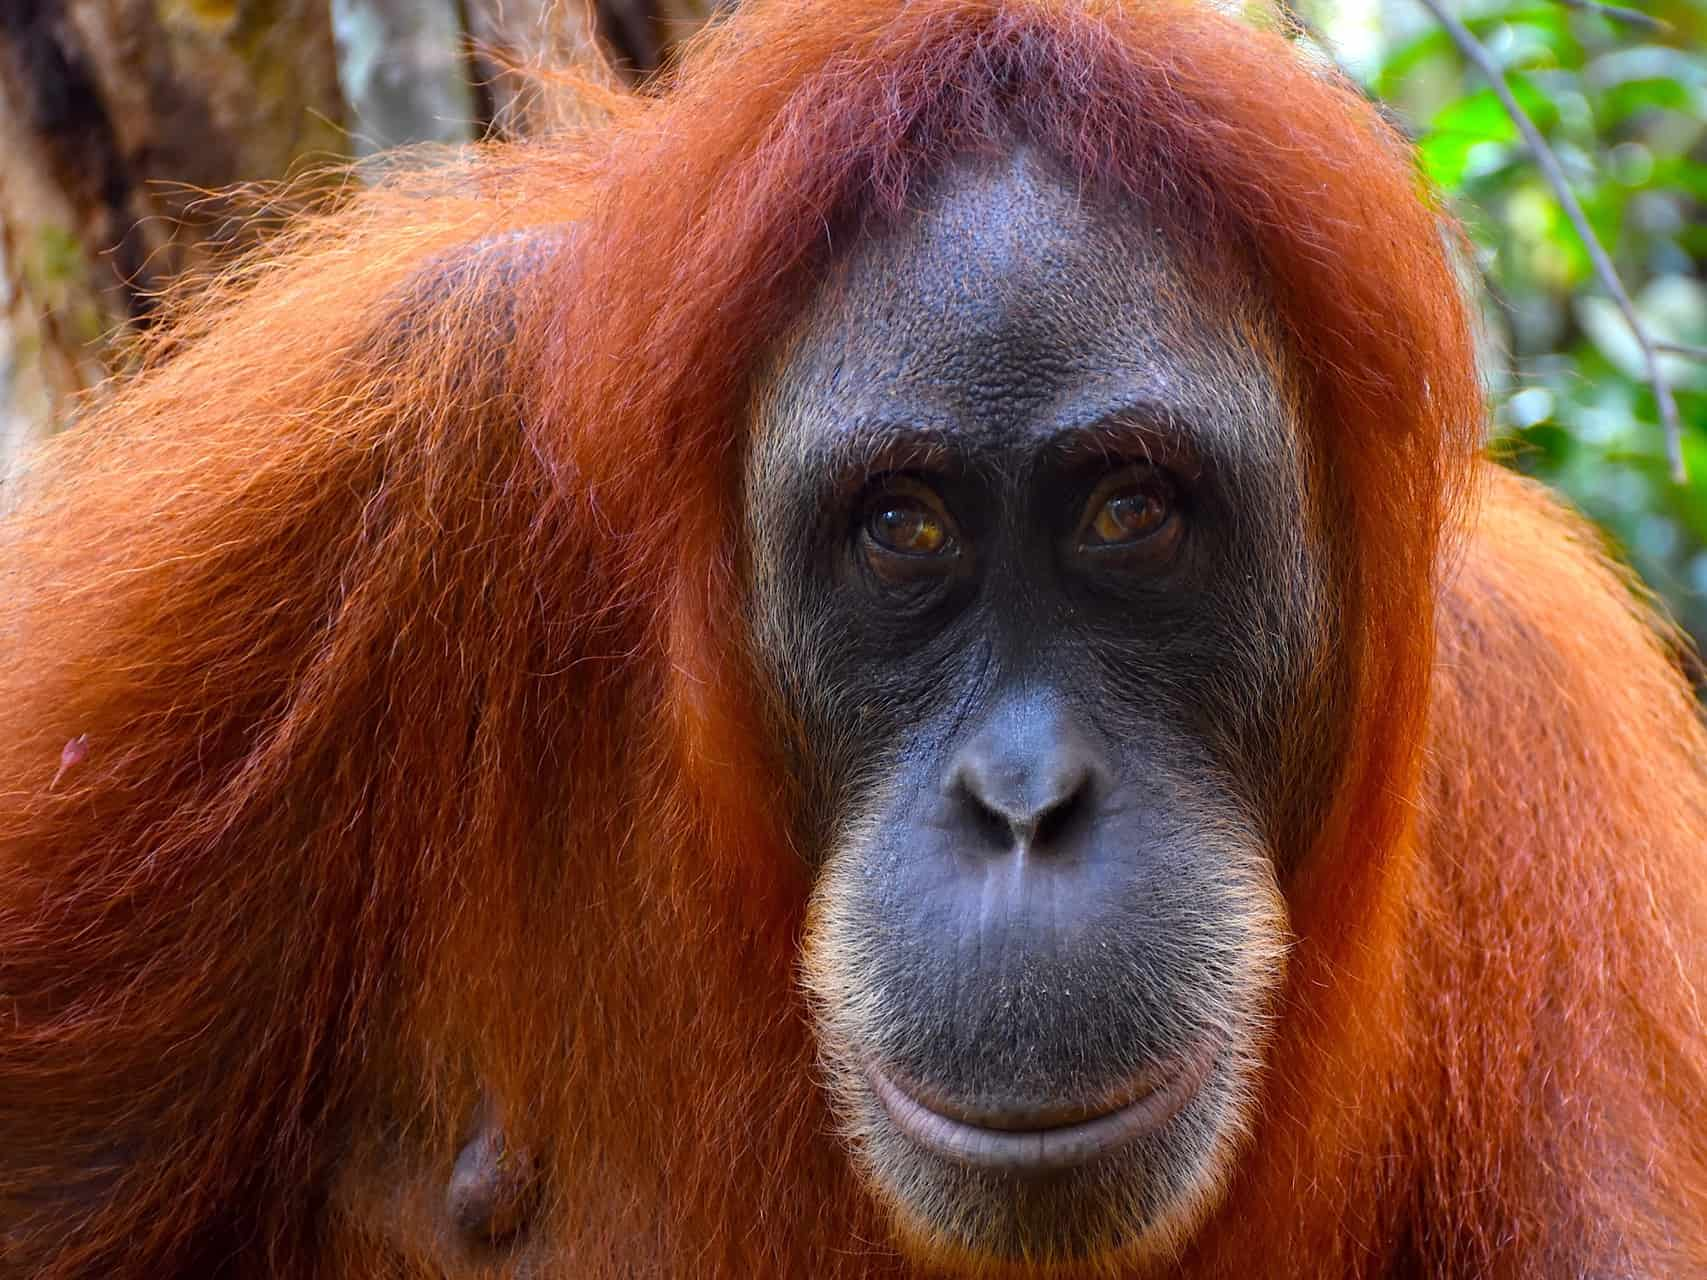 SUMATRAN ORANGUTAN FEMALE - BUKIT LAWANG JUNGLE TREKKING - SUMATRA HIGHLIGHT BY SUMATRA ECOTRAVEL